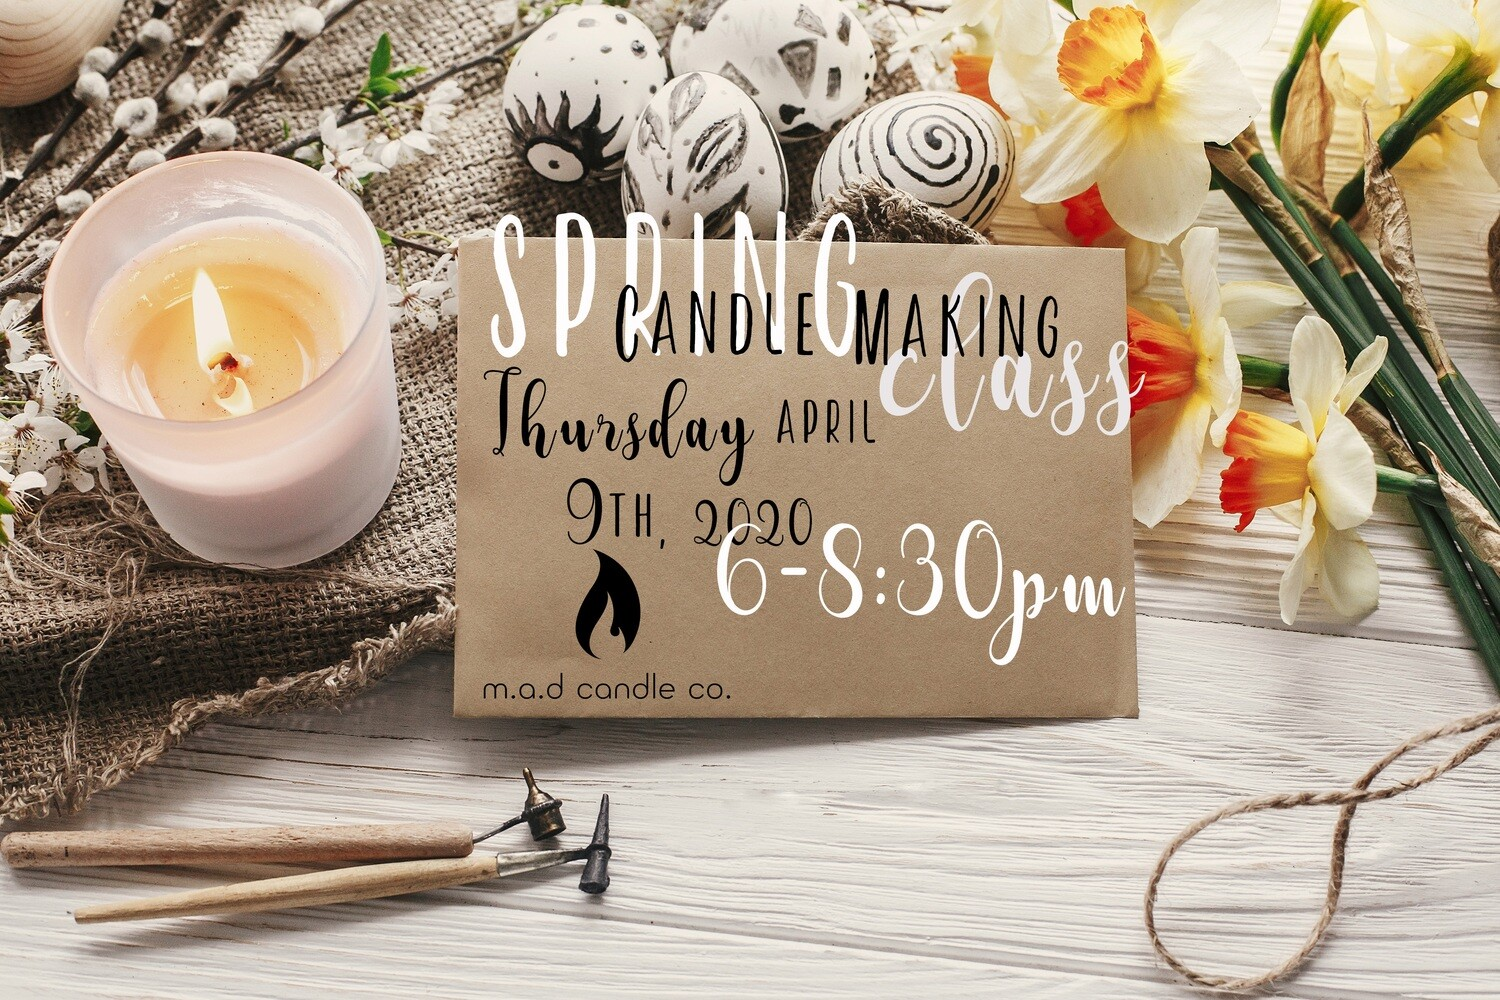 POSTPONED: Candle Making Class 4/9/20